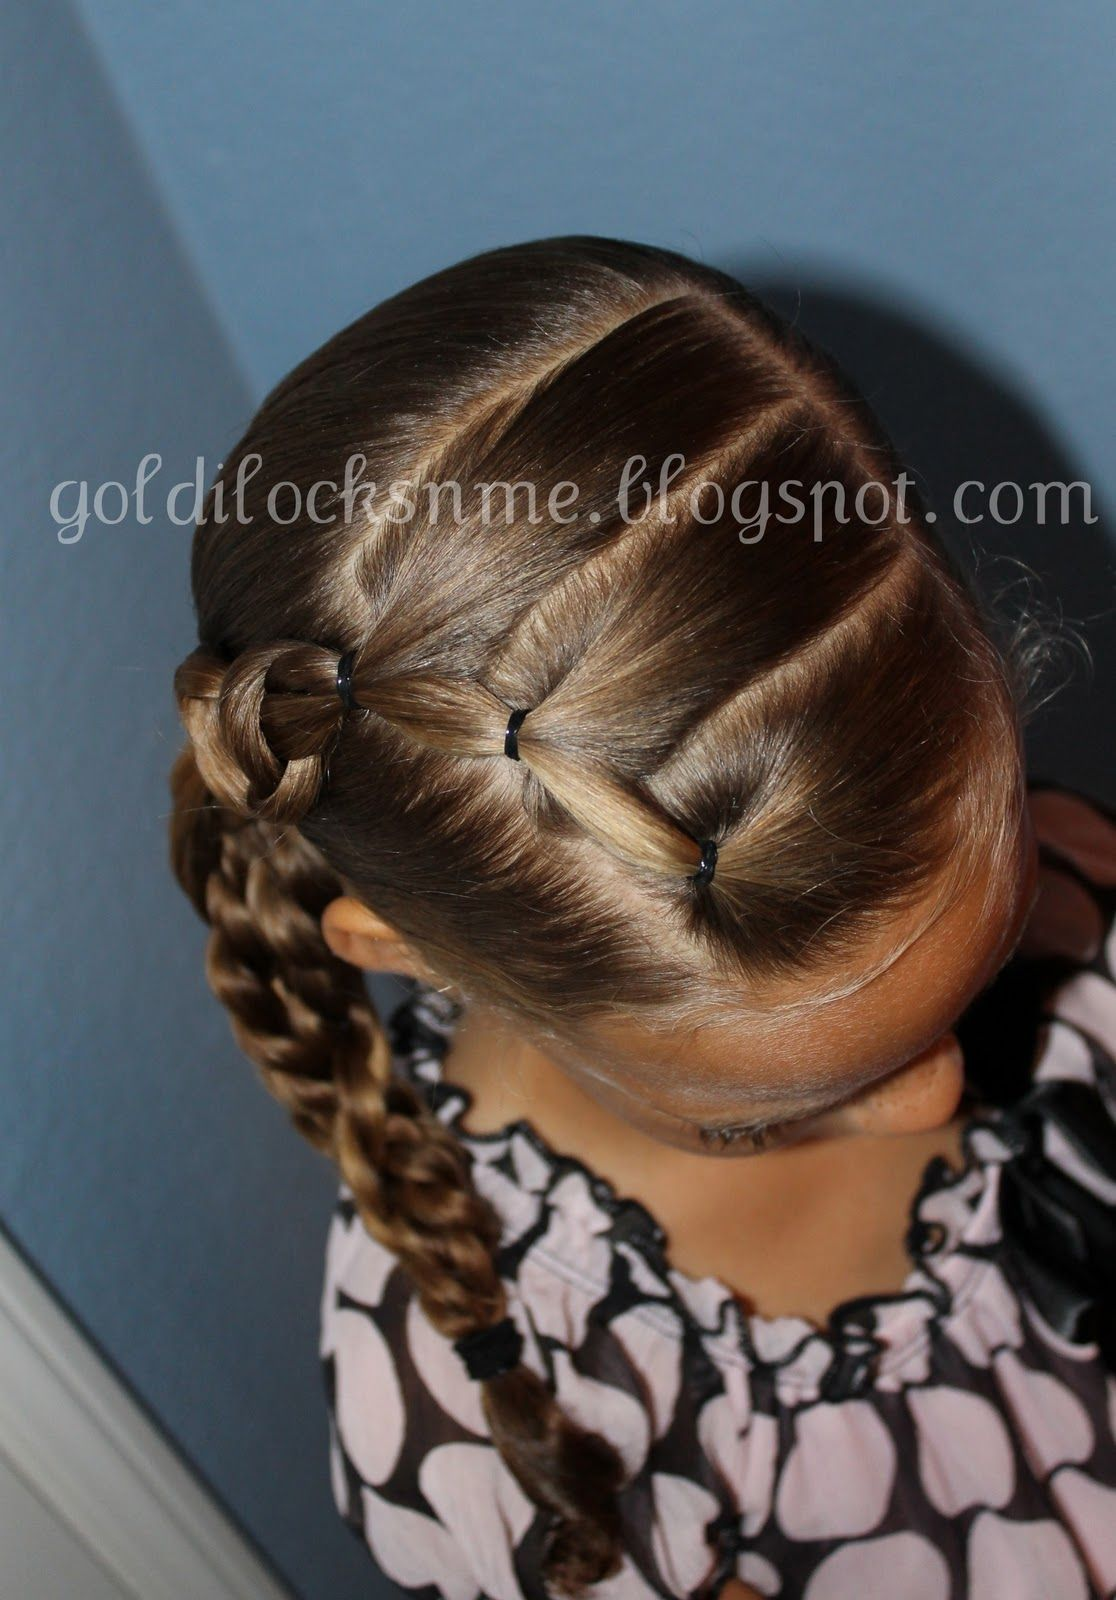 Find This Pin And More On Goldilocks*n*me Hair